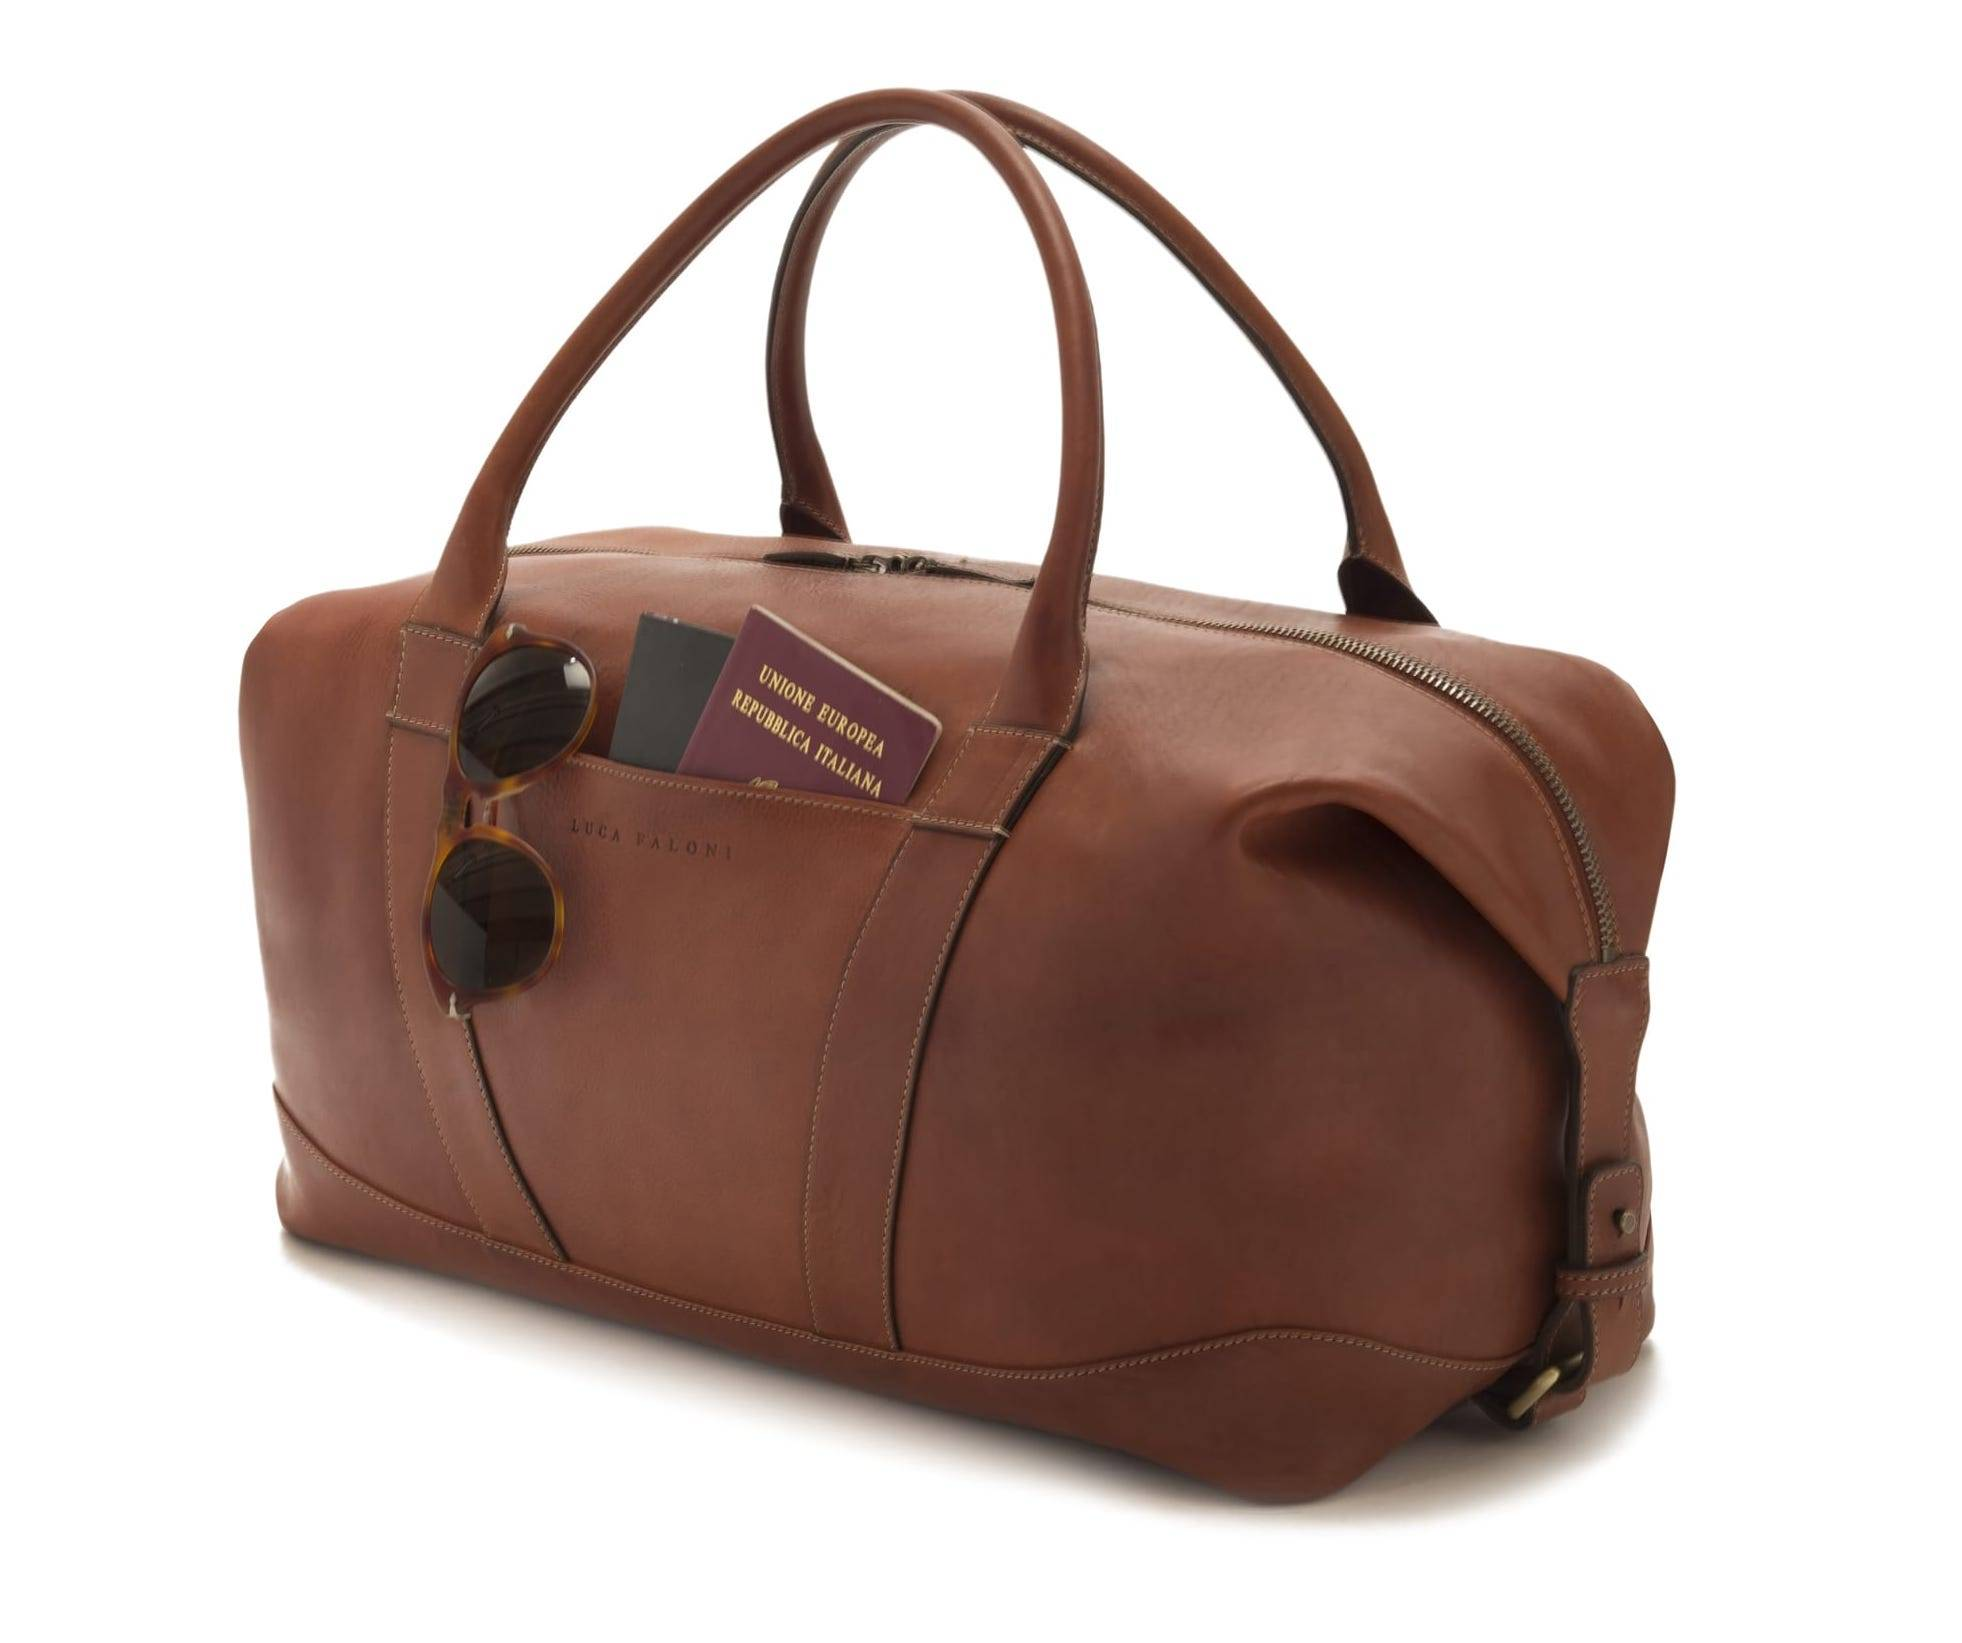 Luca Faloni Cognac leather travel bag made in Italy